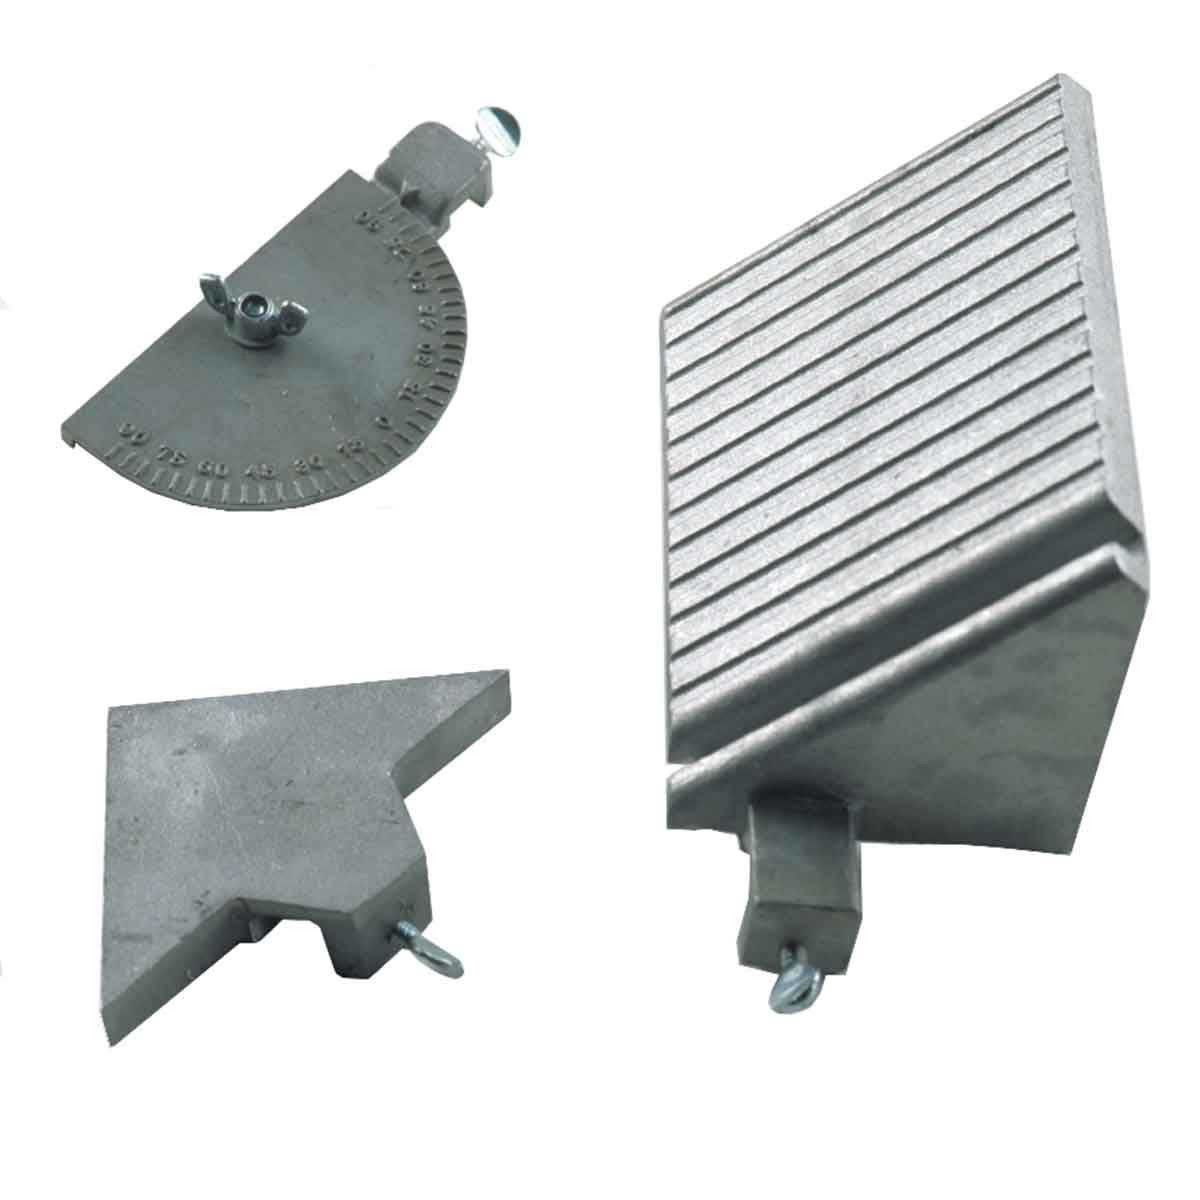 Husqvarna Tile Saw Cutting Accessories Package 542169543 by Husqvarna